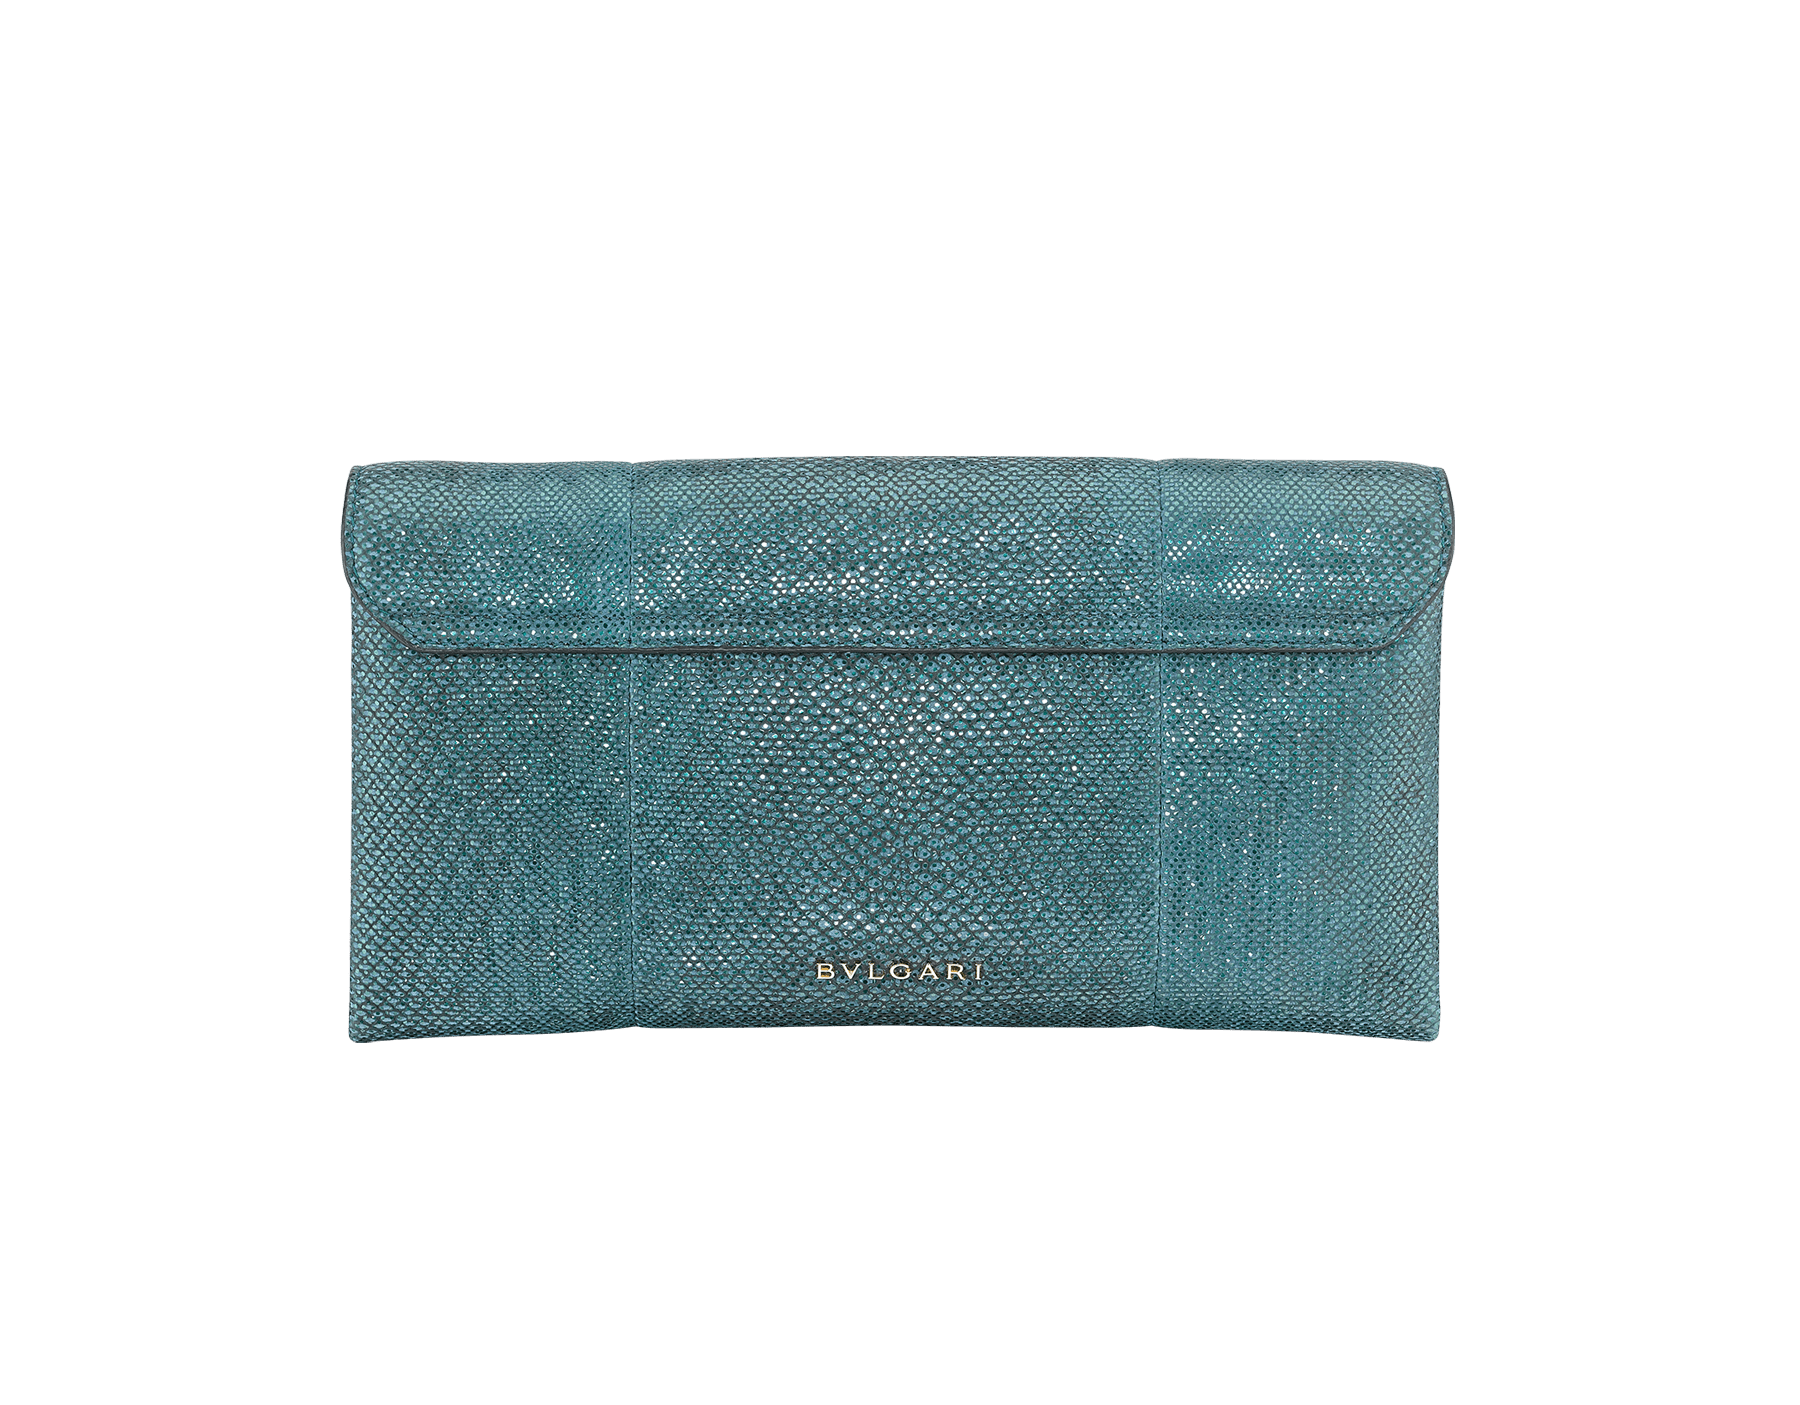 """Serpenti"" evening clutch in multicolor metallic karung skin, with black nappa leather internal lining. Tempting snakehead stud closure in light pink gold plated brass enriched with black and glitter ultra pink gold enamel and black onyx eyes. 526-001-0817S-MK image 3"